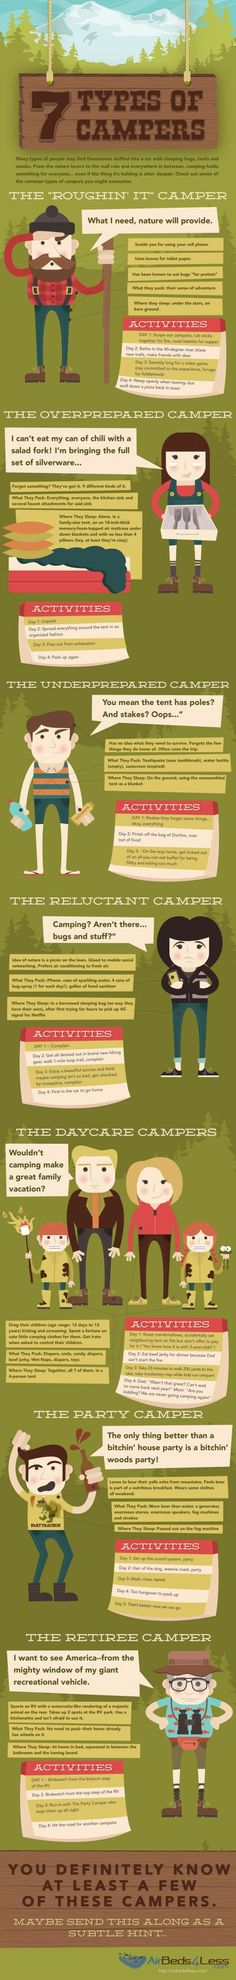 7 Types of Campers #infographic